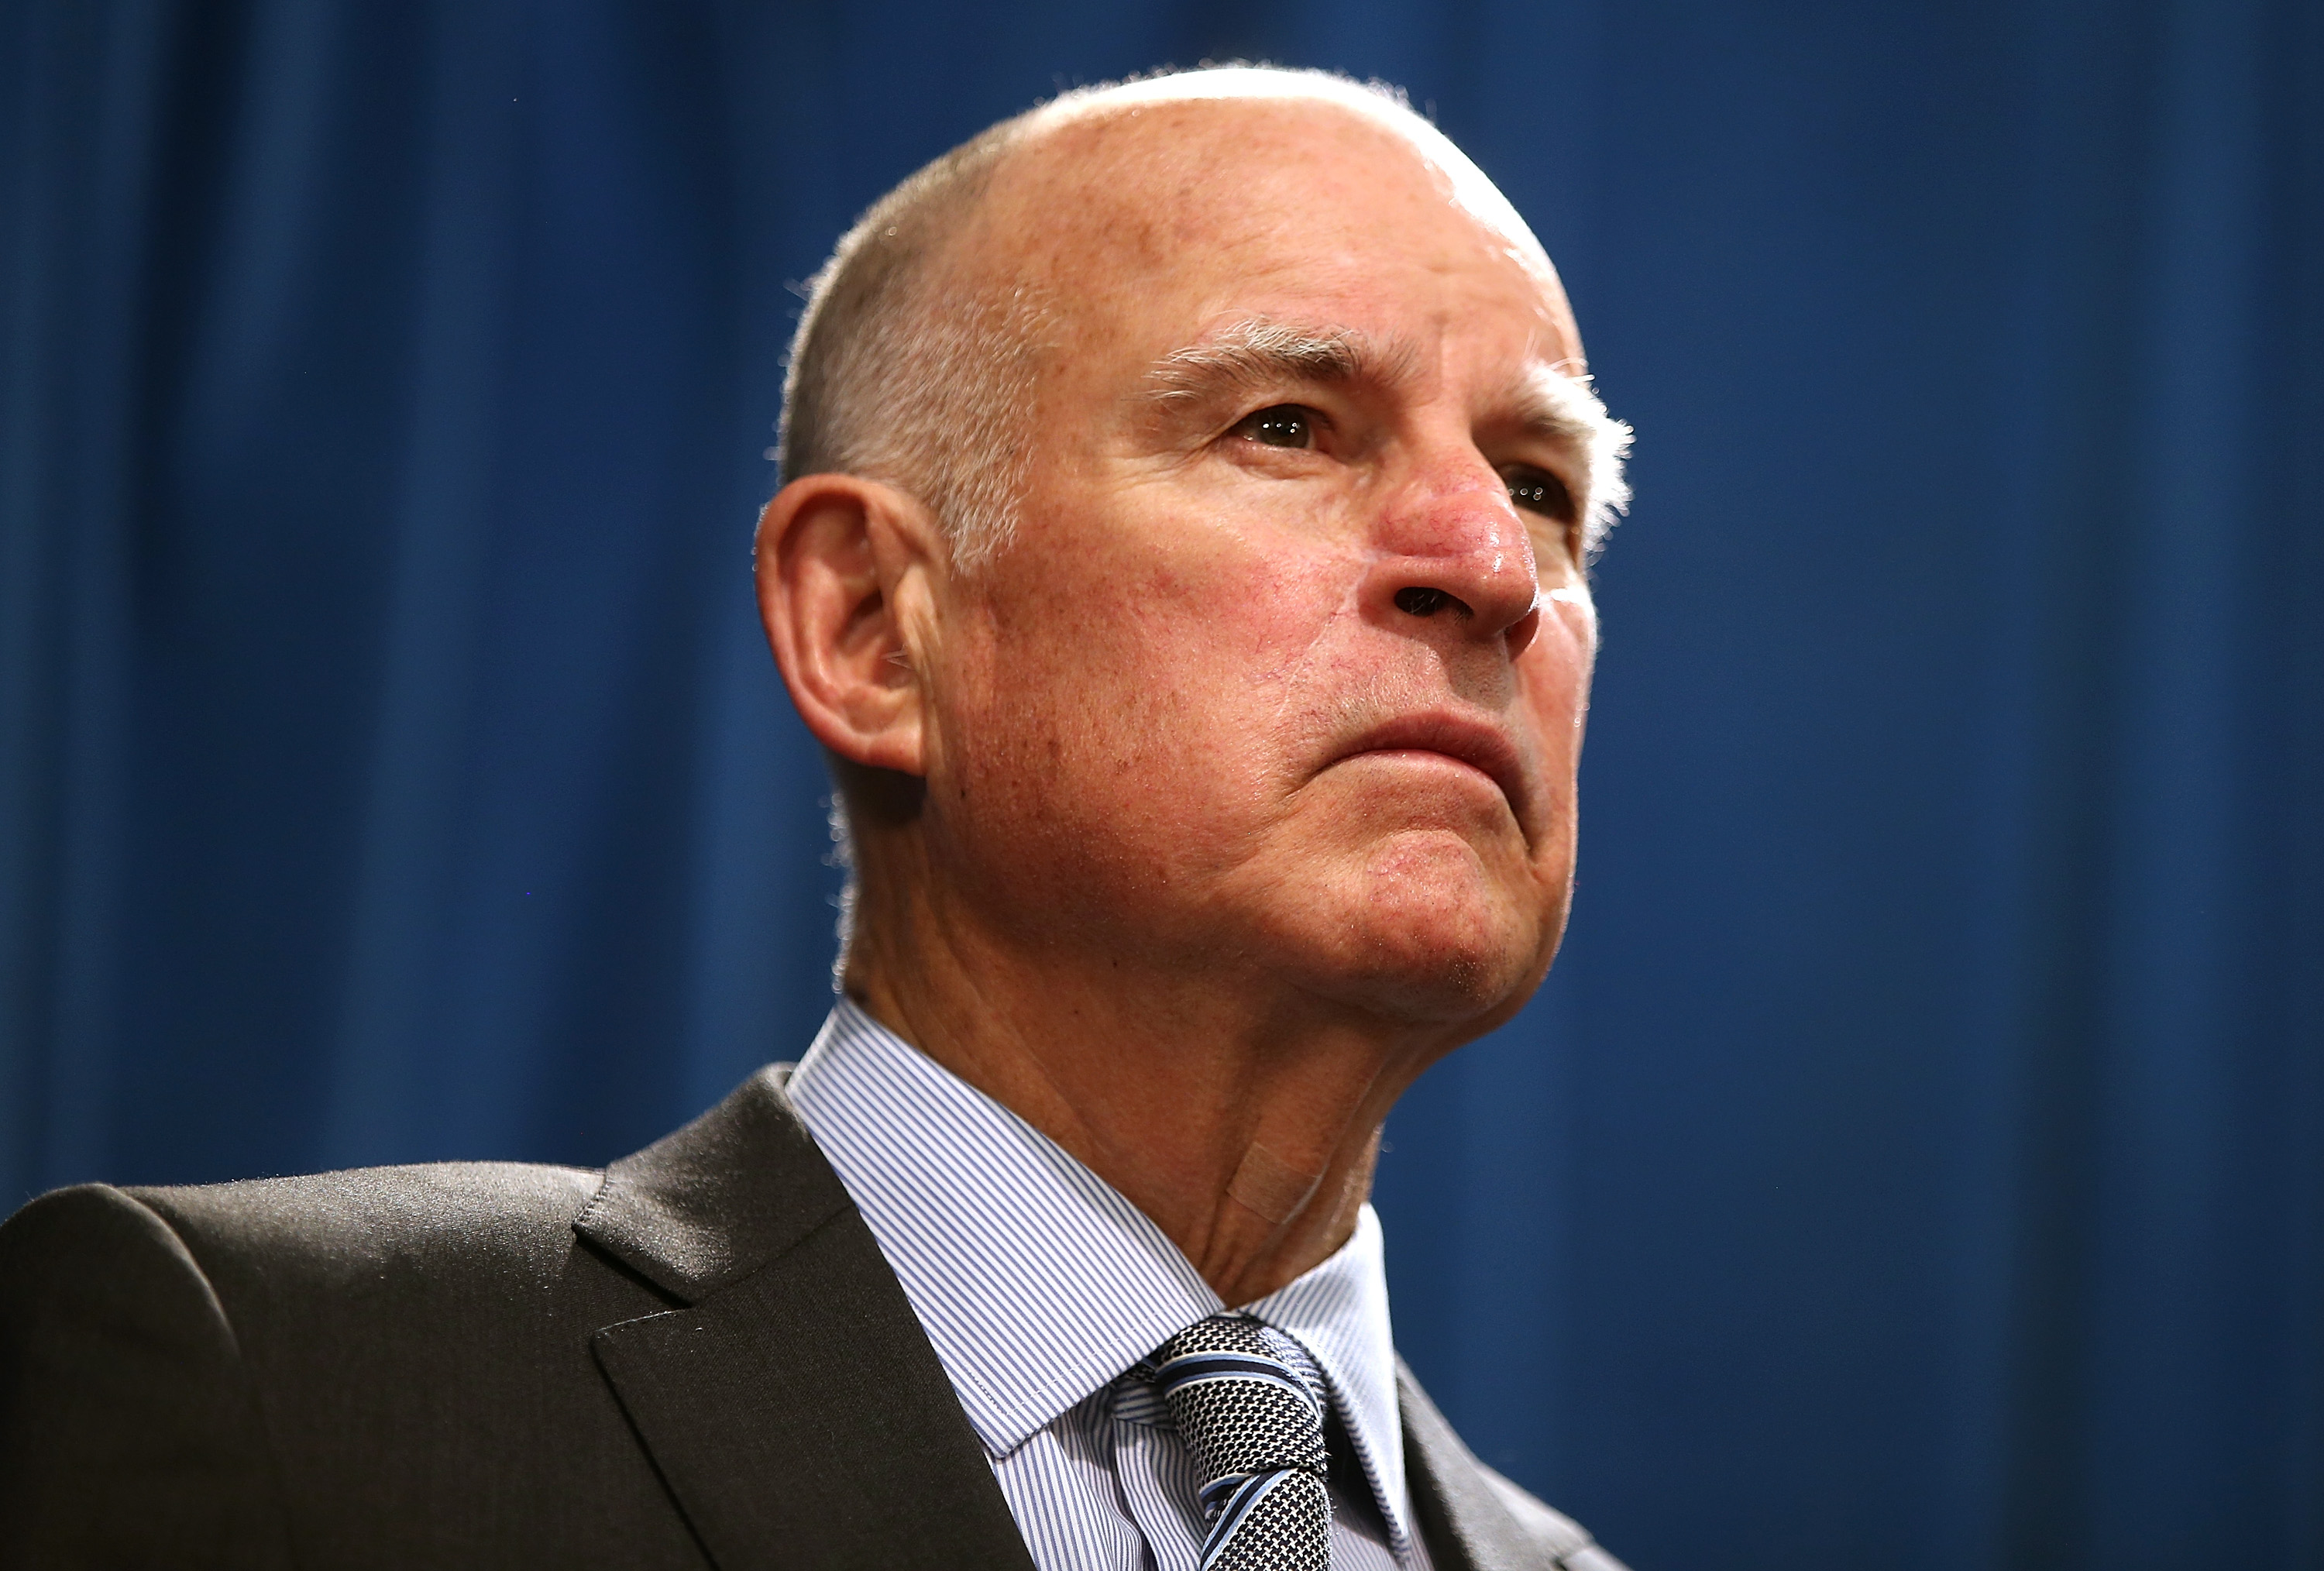 California Governor Jerry Brown speaks during a news conference to announce emergency drought legislation on March 19, 2015, in Sacramento, Calif.